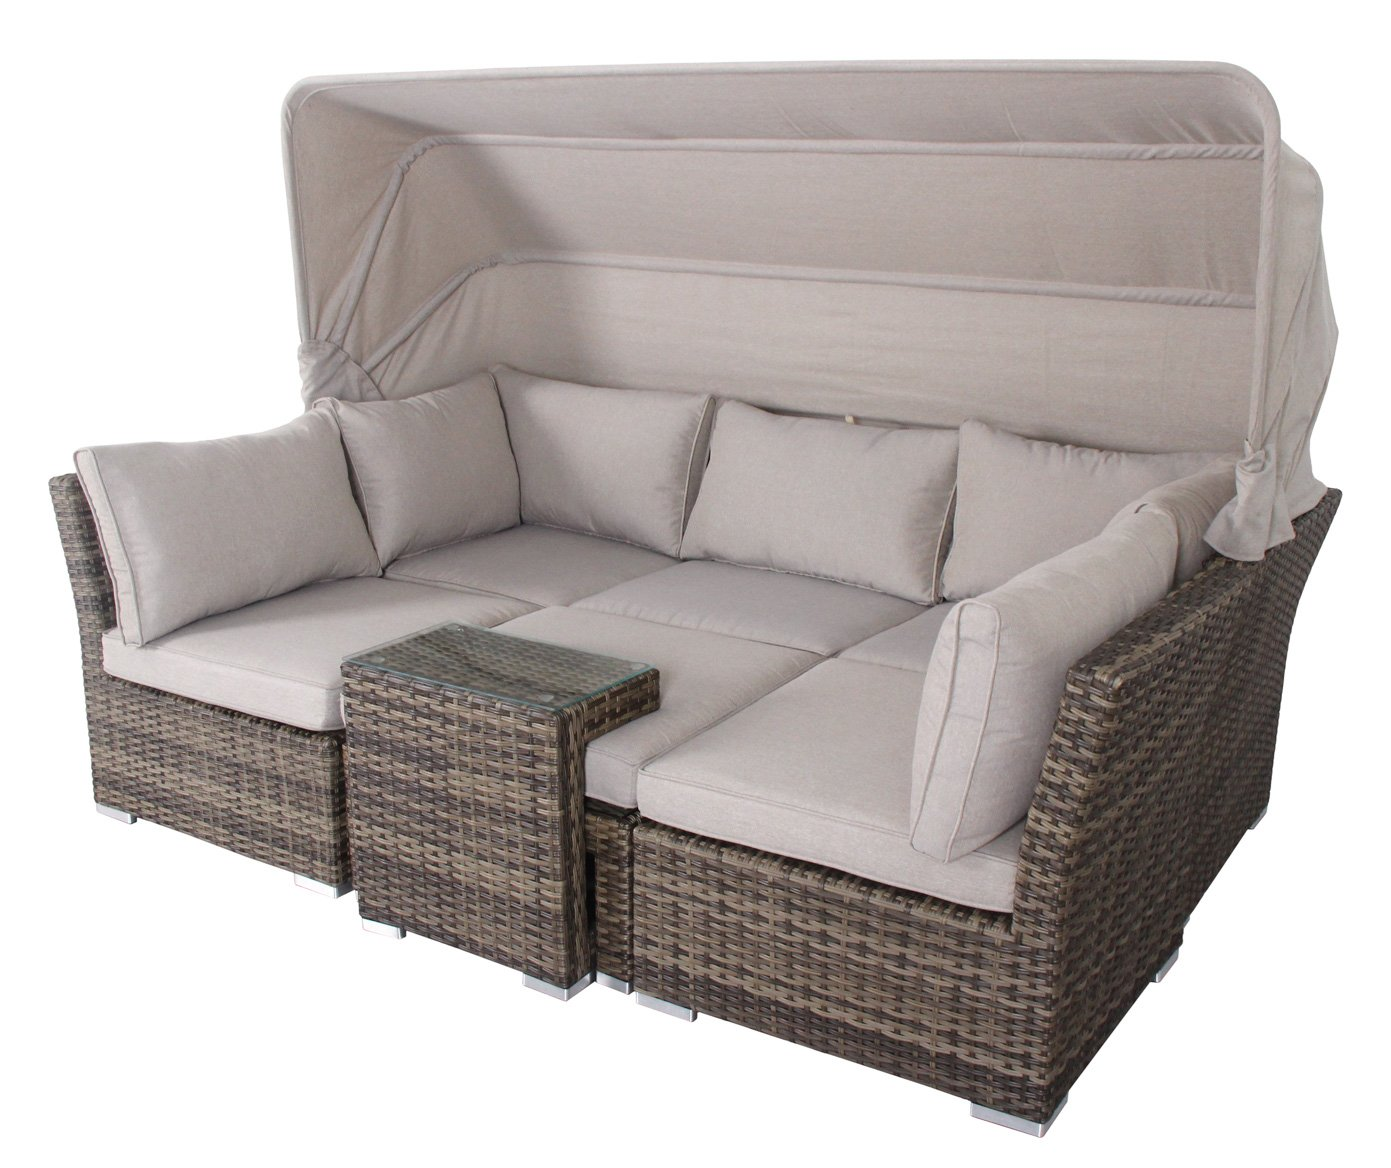 gartenbank rattan beautiful designer rattan sitzbank gartenbank schwarz weiss gartenmbel bank. Black Bedroom Furniture Sets. Home Design Ideas